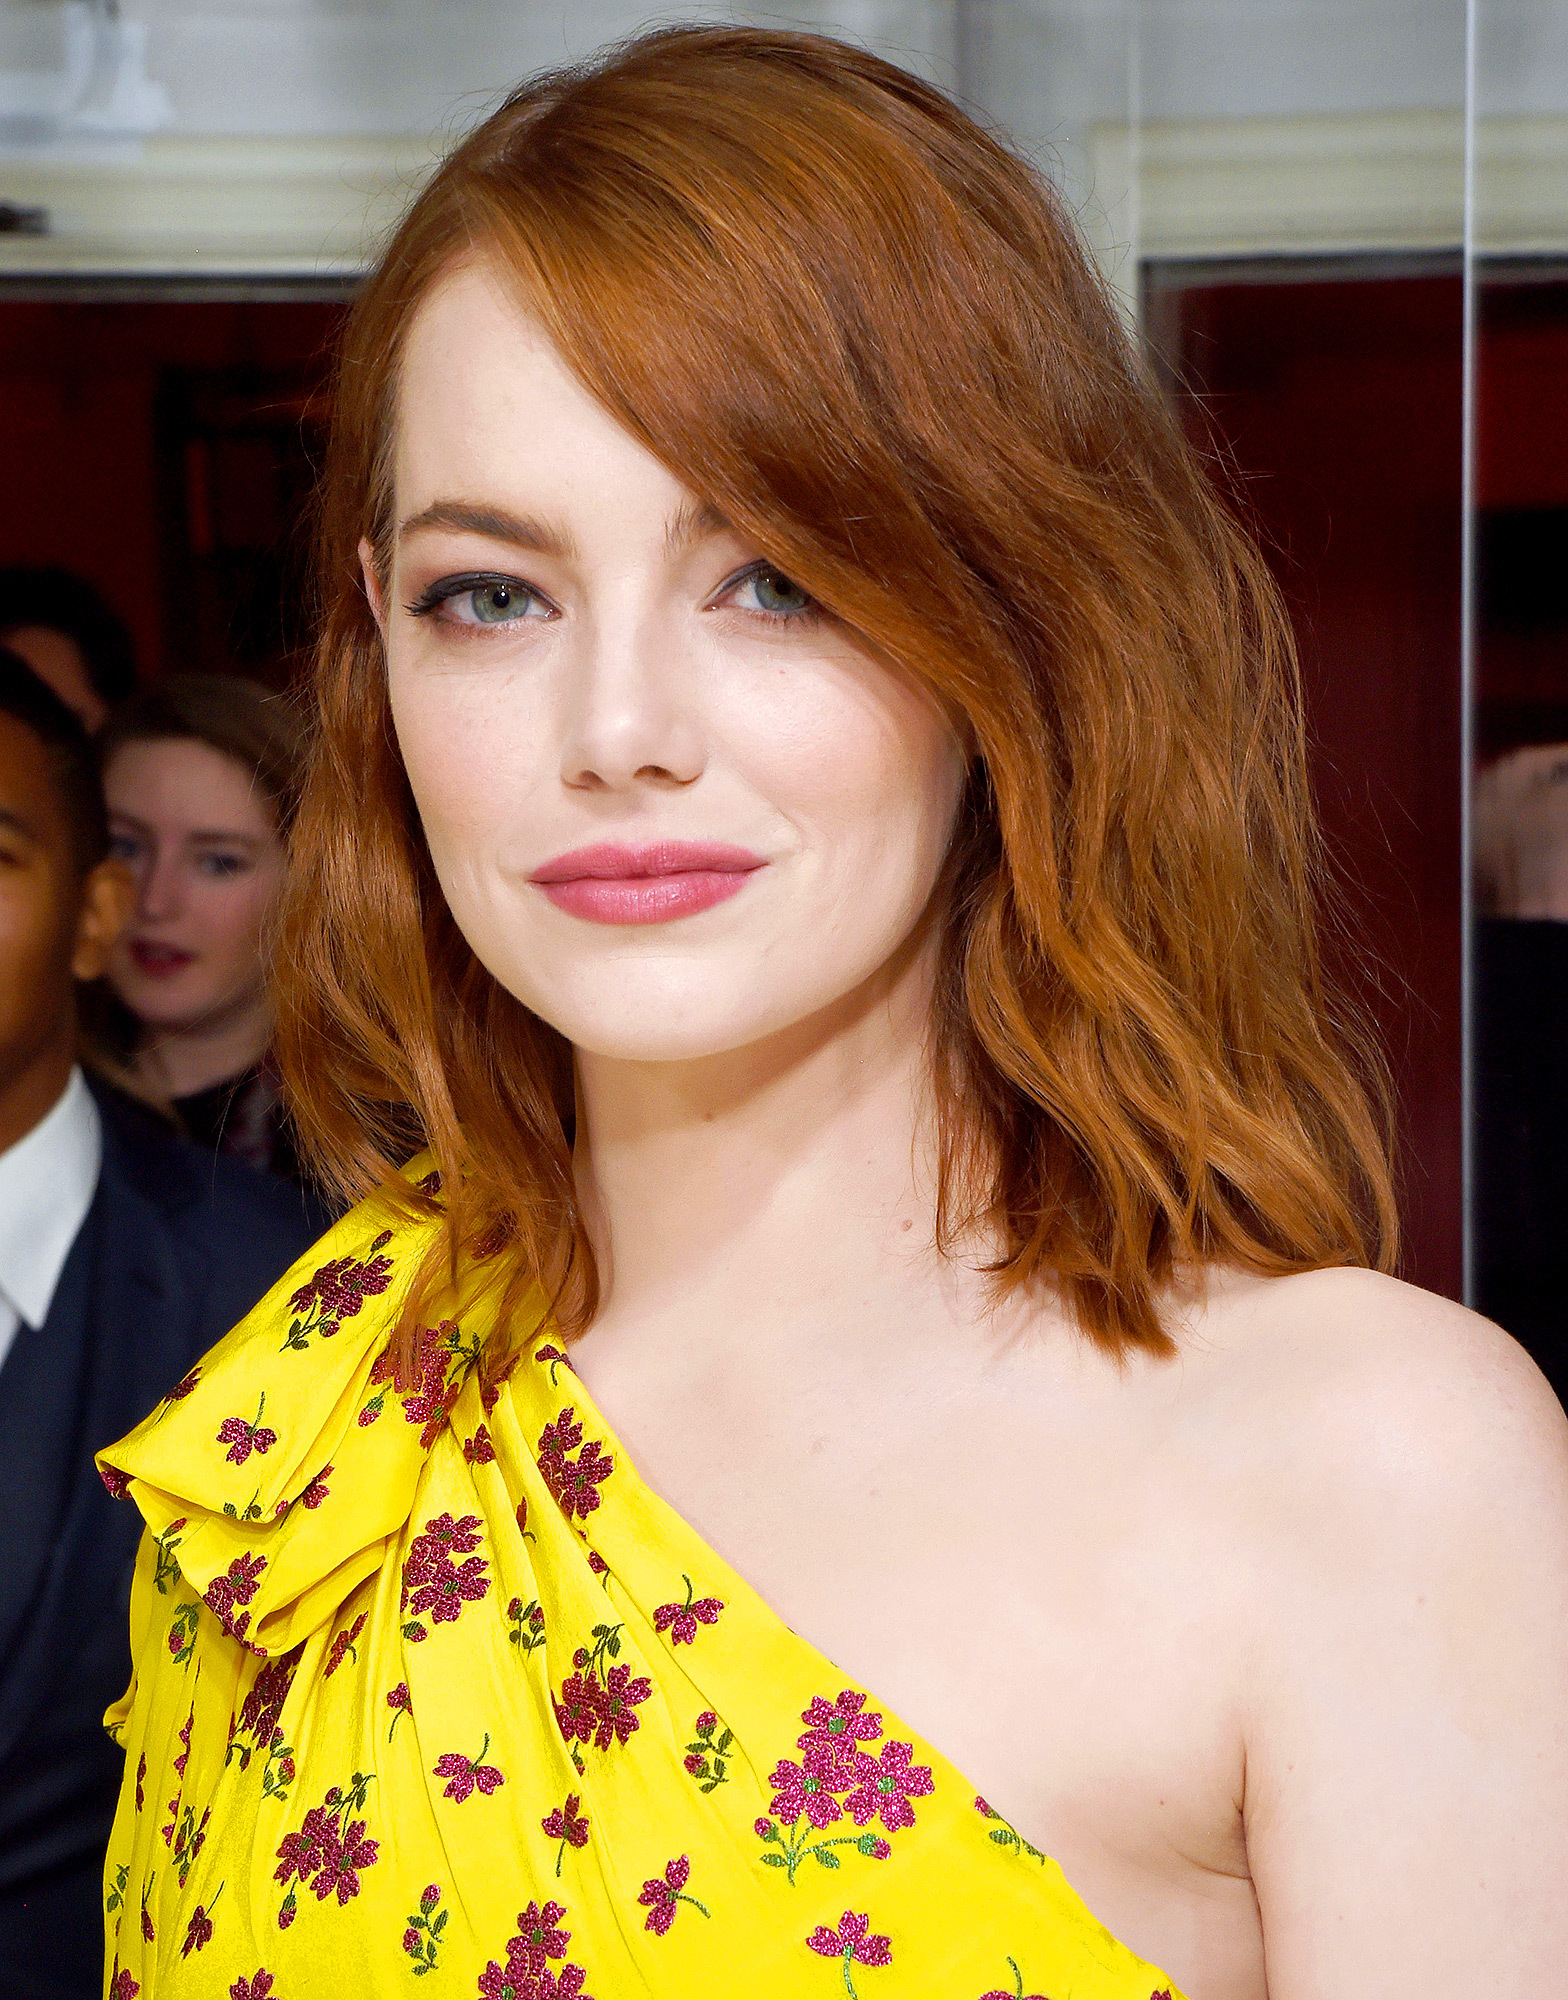 Emma stones colorist tracey cunningham reveals her genius tips emma stones colorist tracey cunningham reveals her genius tips for lasting hair color urmus Choice Image